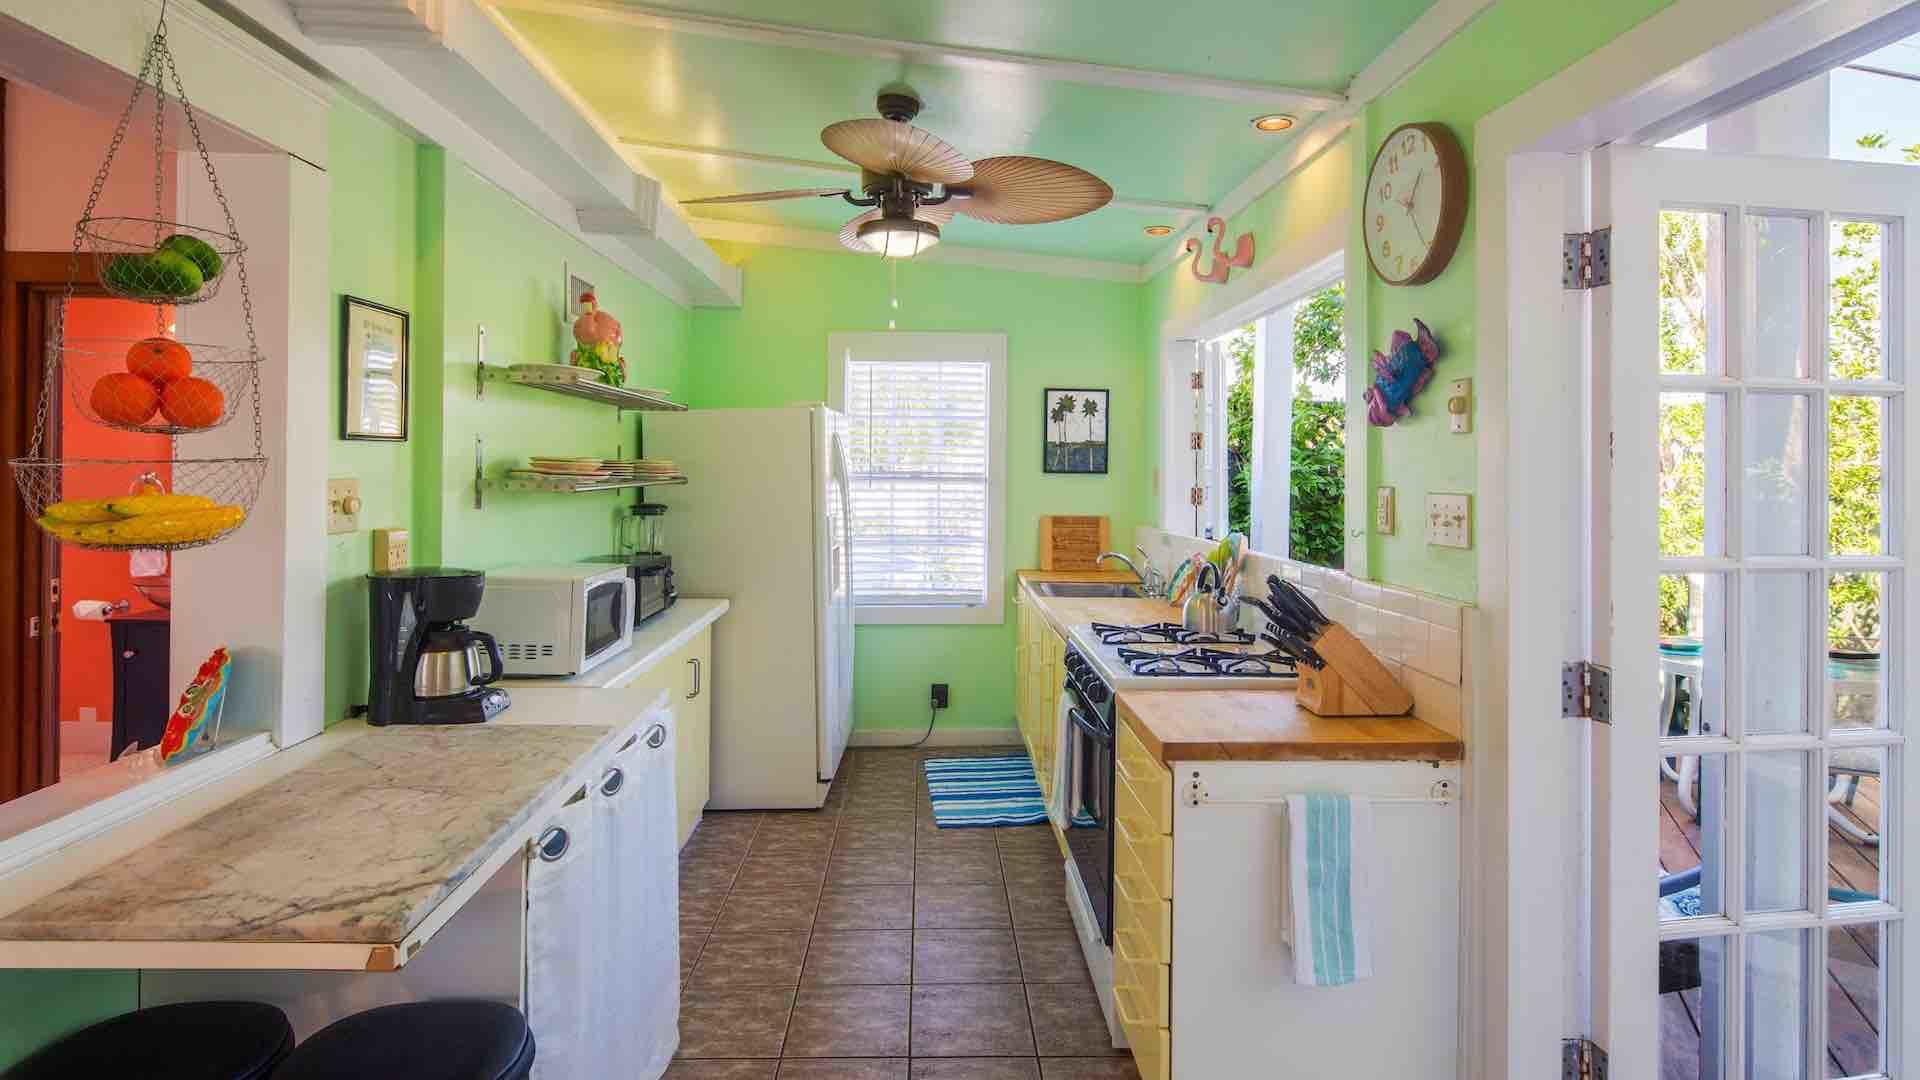 The galley style kitchen has all your household appliances, including a blender...